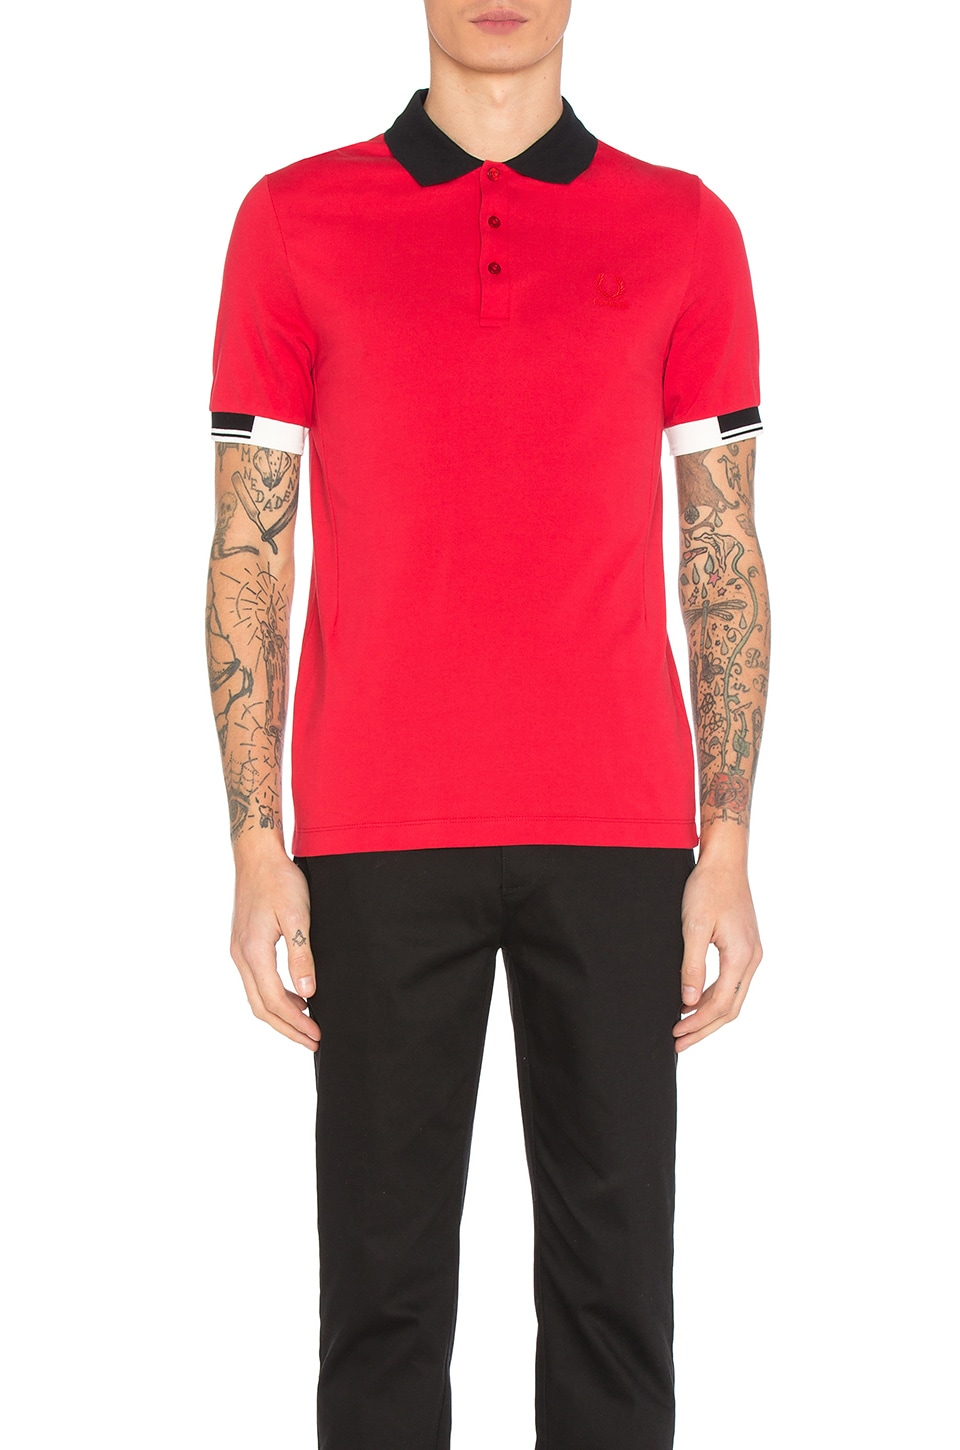 tipped cuff pique polo by fred perry x raf simons shop fred perry x raf simons men 39 s fashion. Black Bedroom Furniture Sets. Home Design Ideas